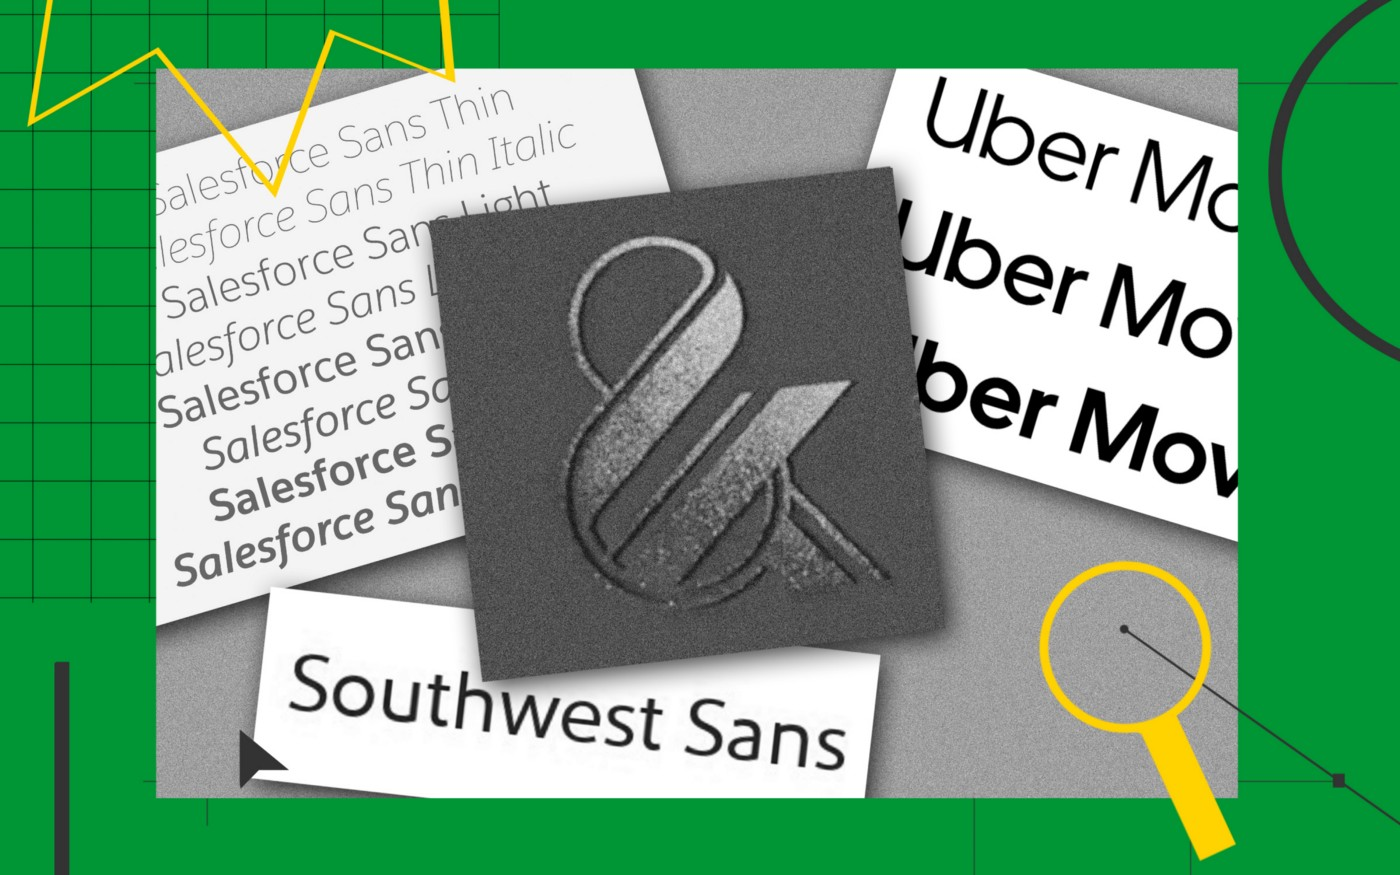 """A collage of different images with various brand custom fonts like """"Salesforce Sans,"""" """"Southwest Sans,"""" and """"Uber Moves."""""""